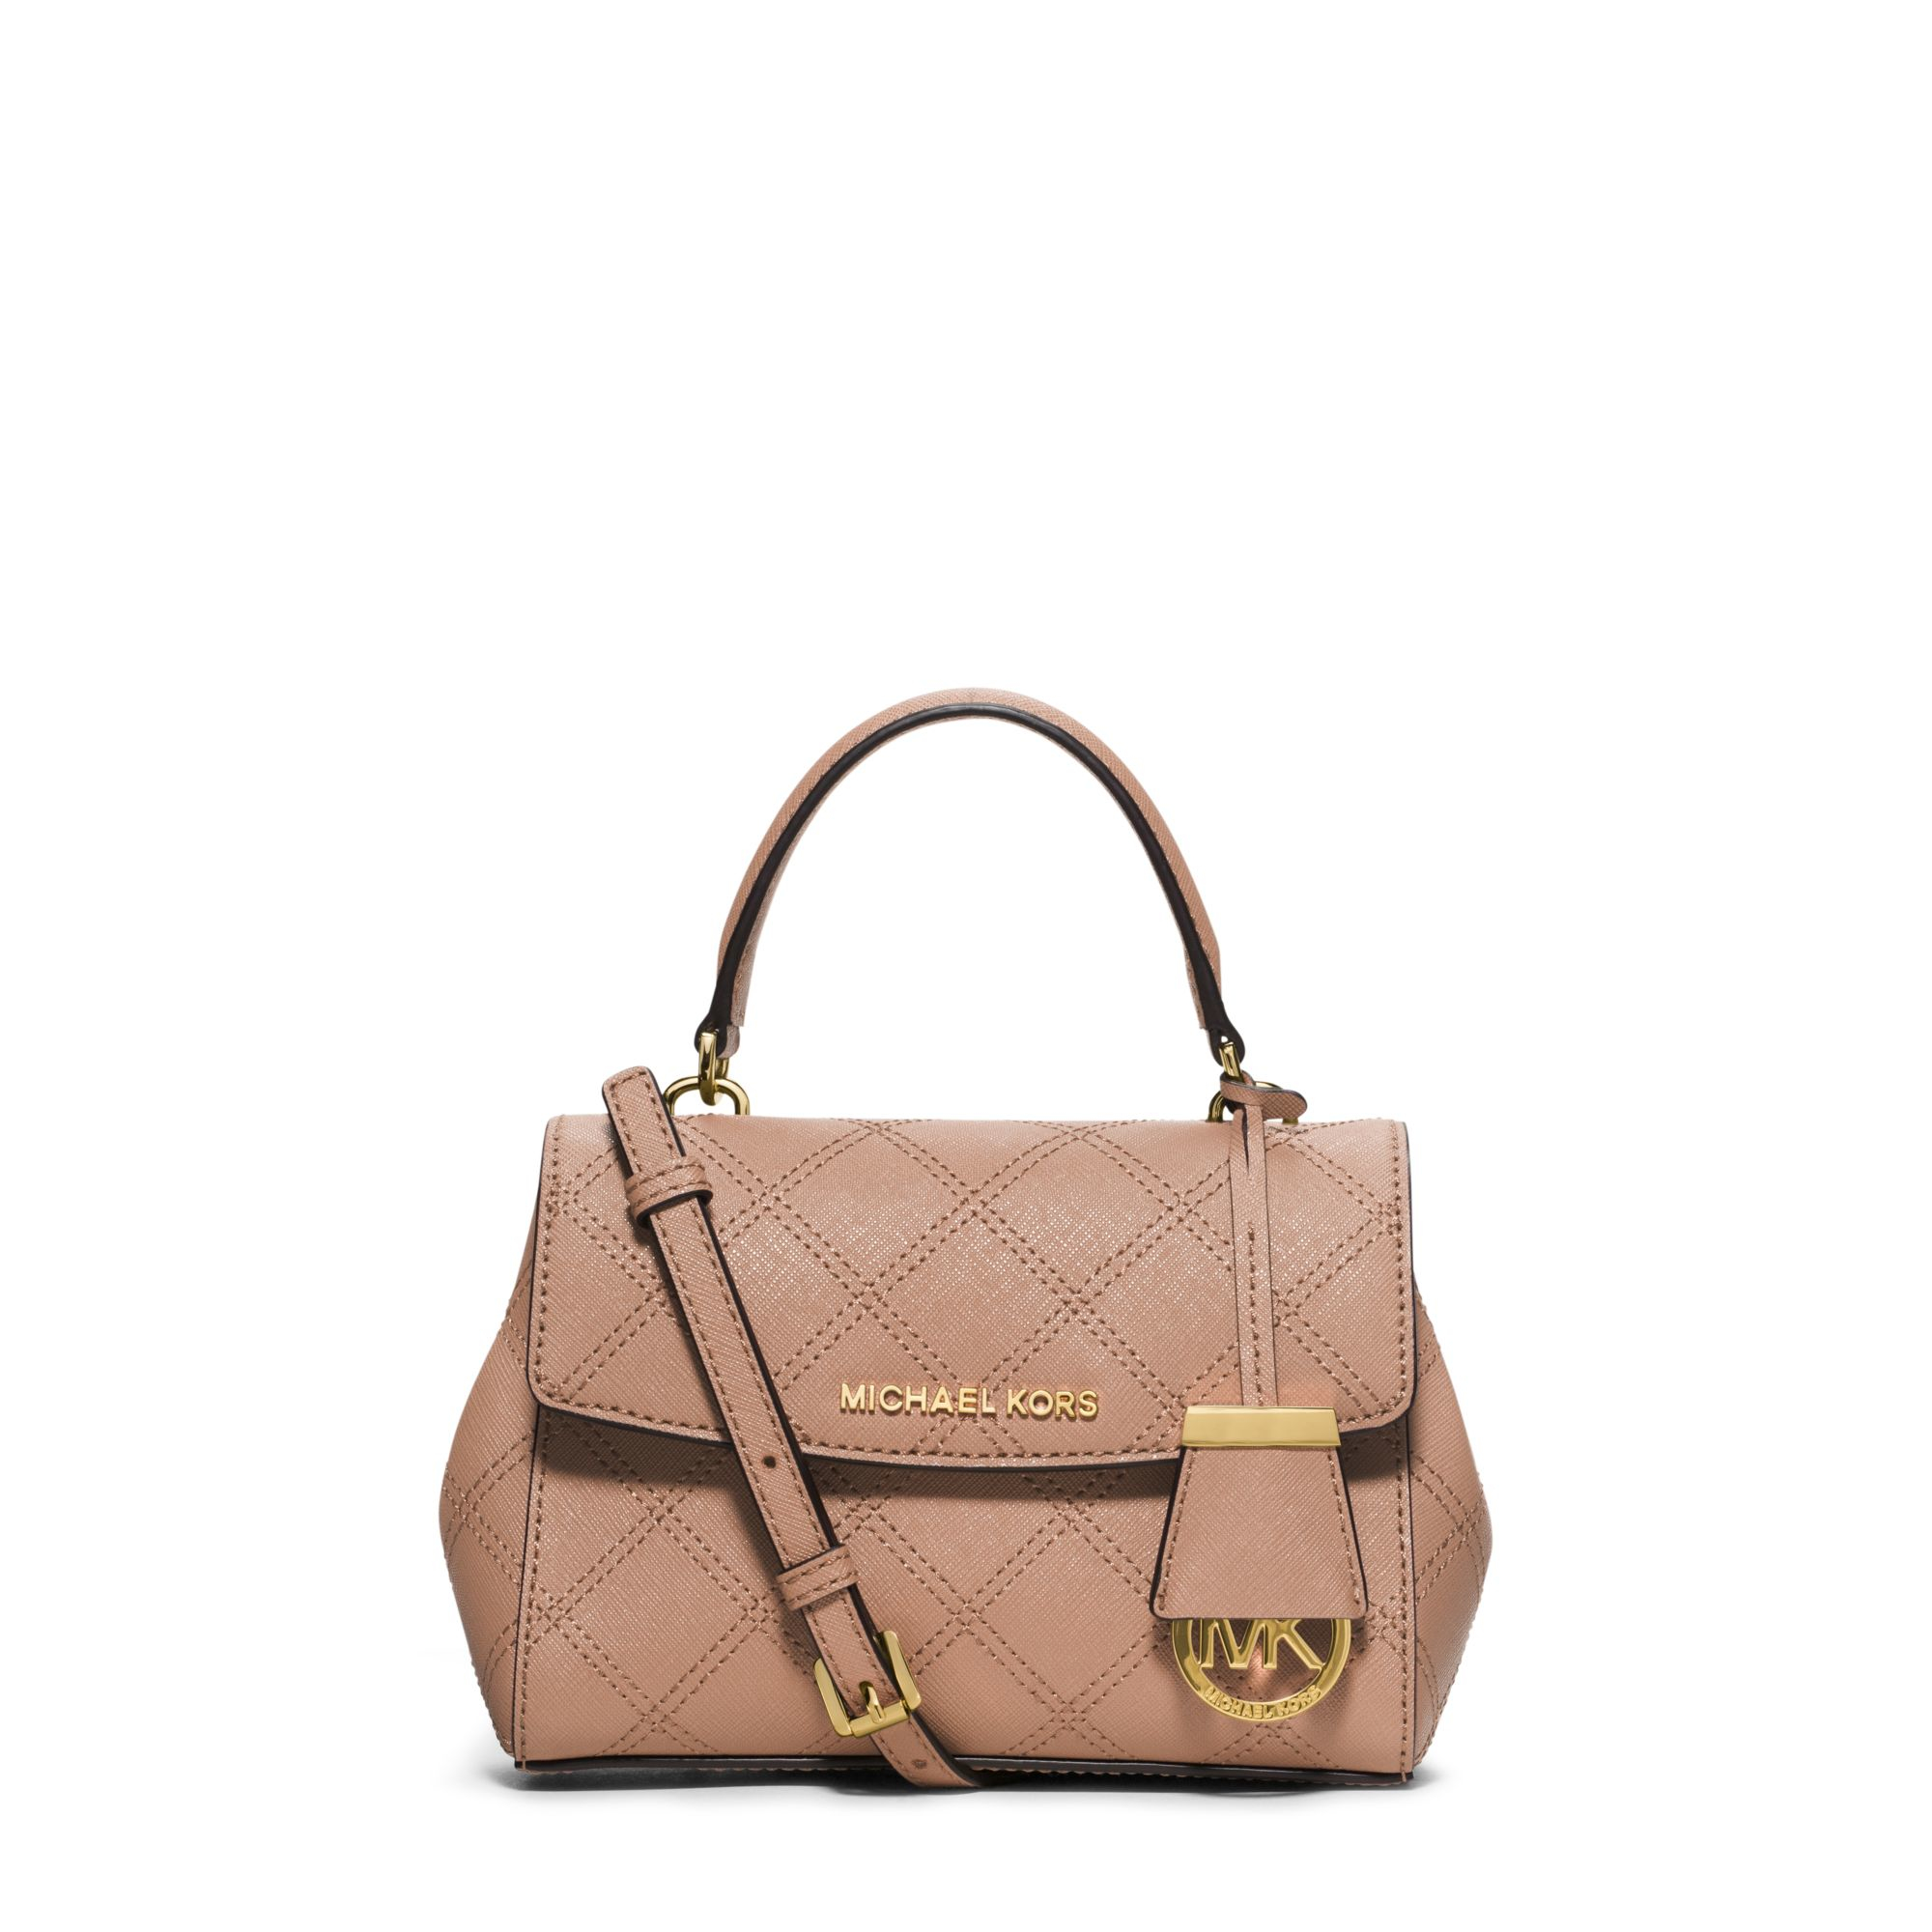 2ff59a6ce454 Lyst - Michael Kors Ava Saffiano-Leather Cross-Body Bag in Brown